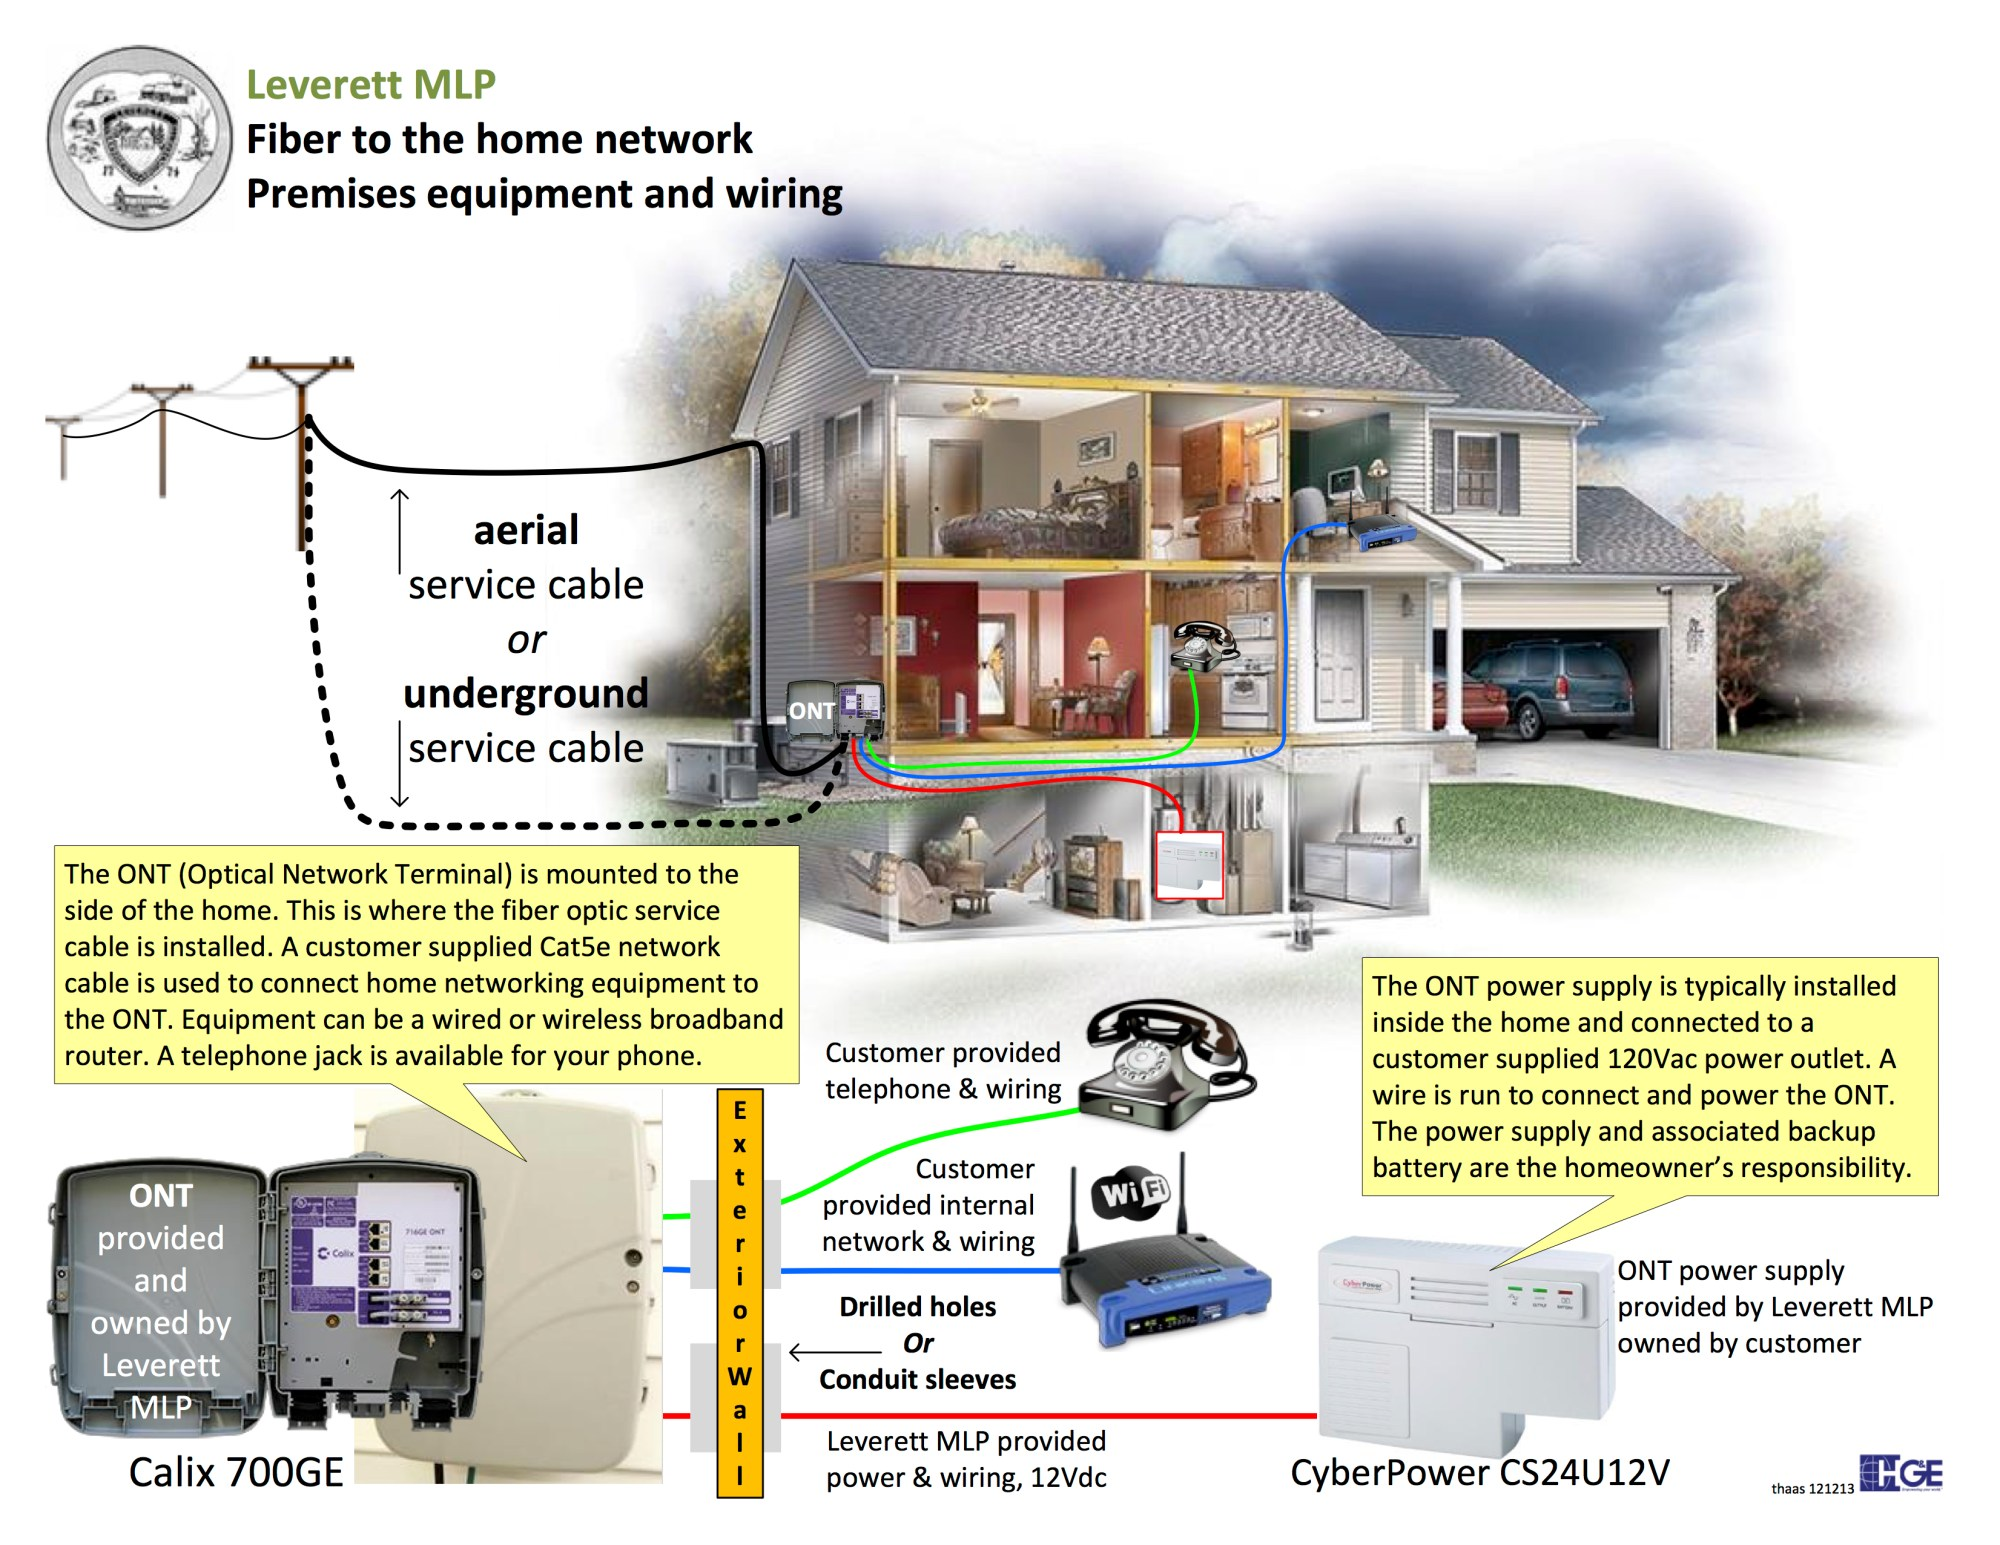 hight resolution of fiber to the home premises equipment and wiring click image to view